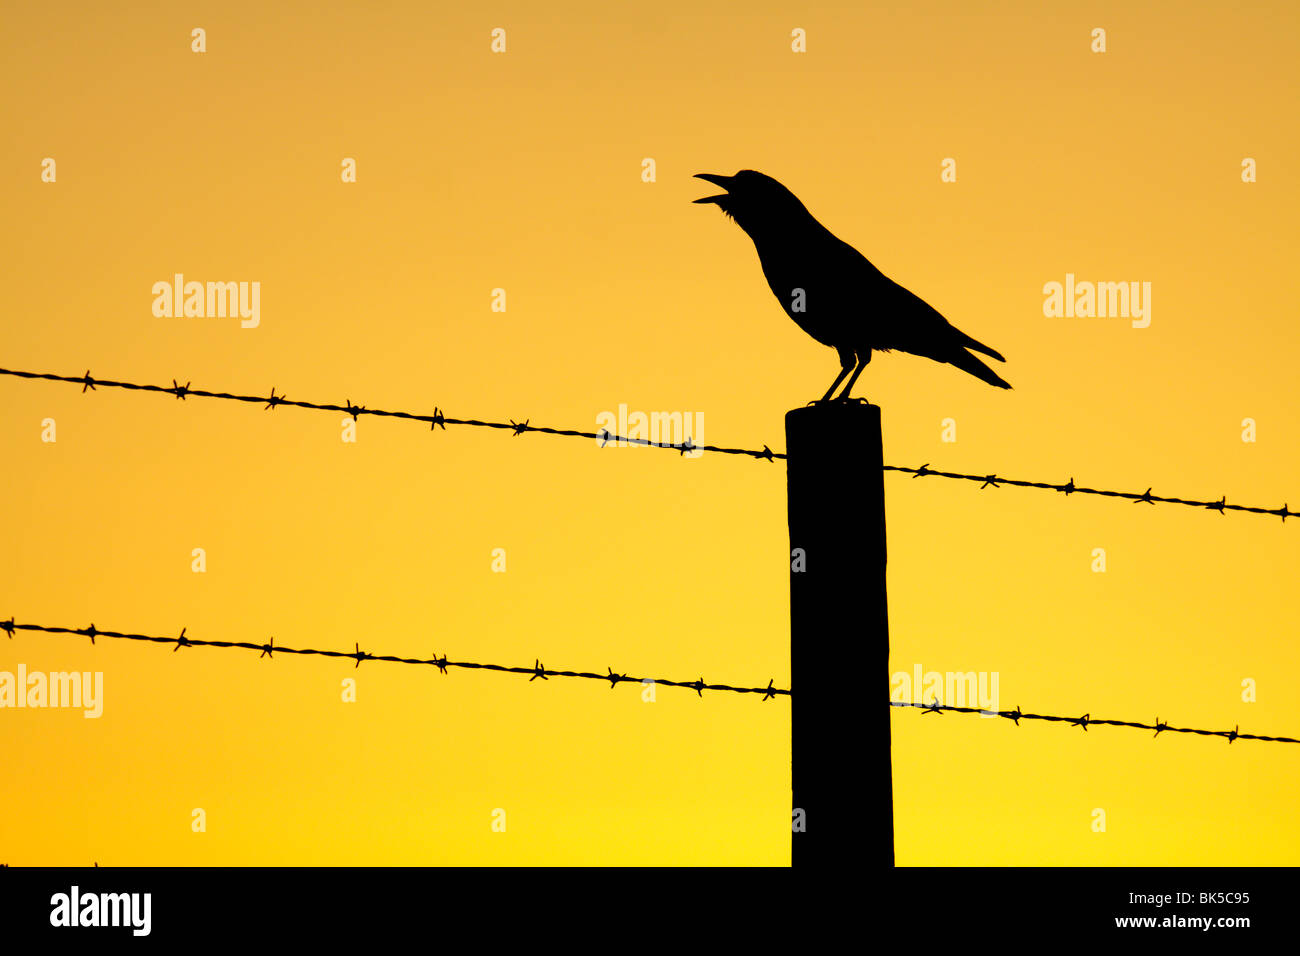 American crow calling from fencepost at sunrise-Piedras Blancas, California, USA. - Stock Image